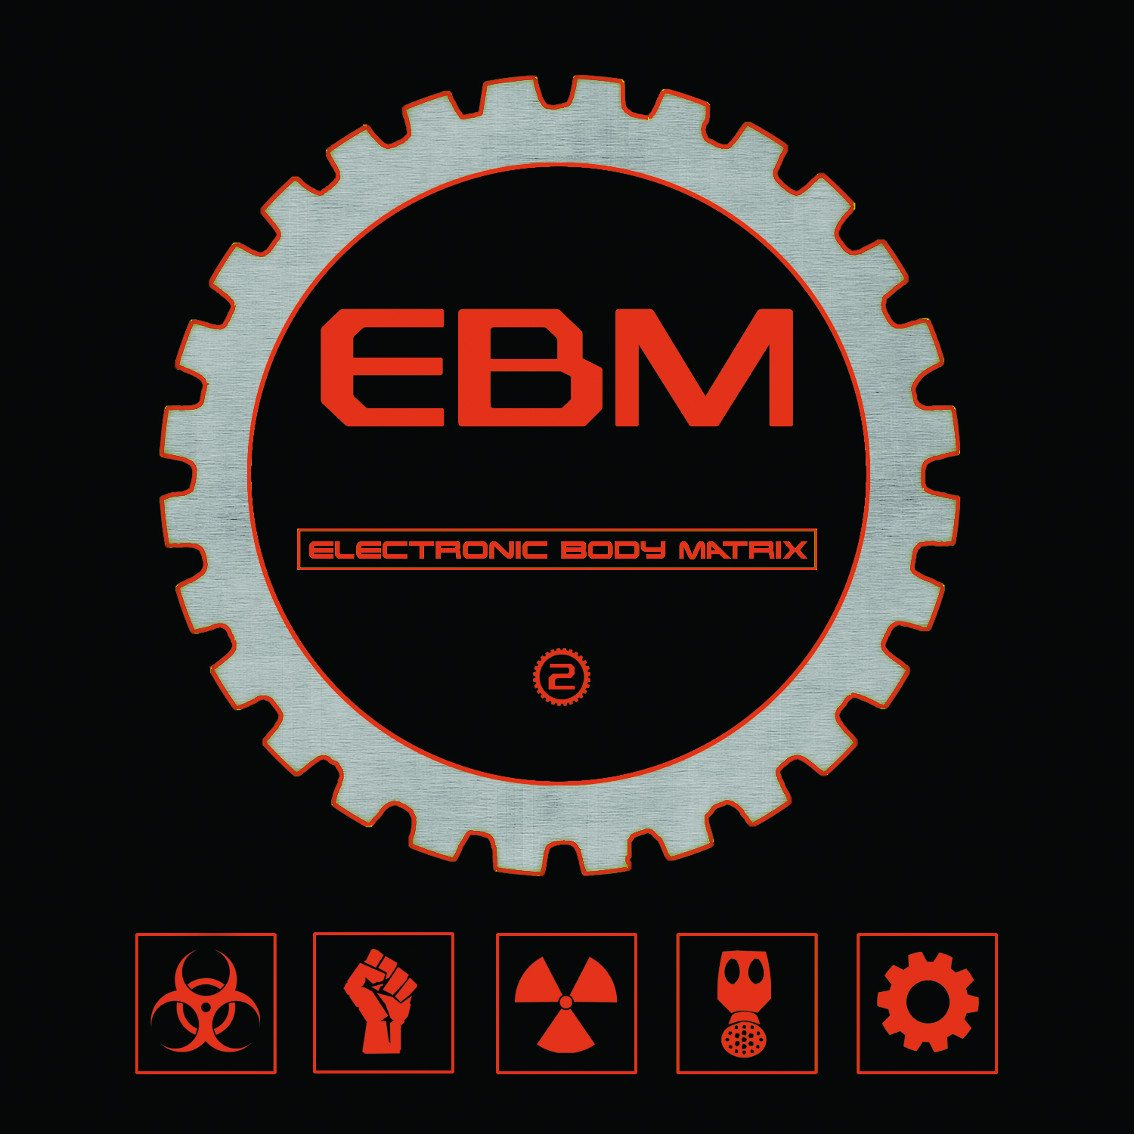 Alfa Matrix to launch 2nd volume of massive 116-track strong EBM compilation: 'Electronic Body Matrix 2' 4CD Boxset (+ bonus downloads)